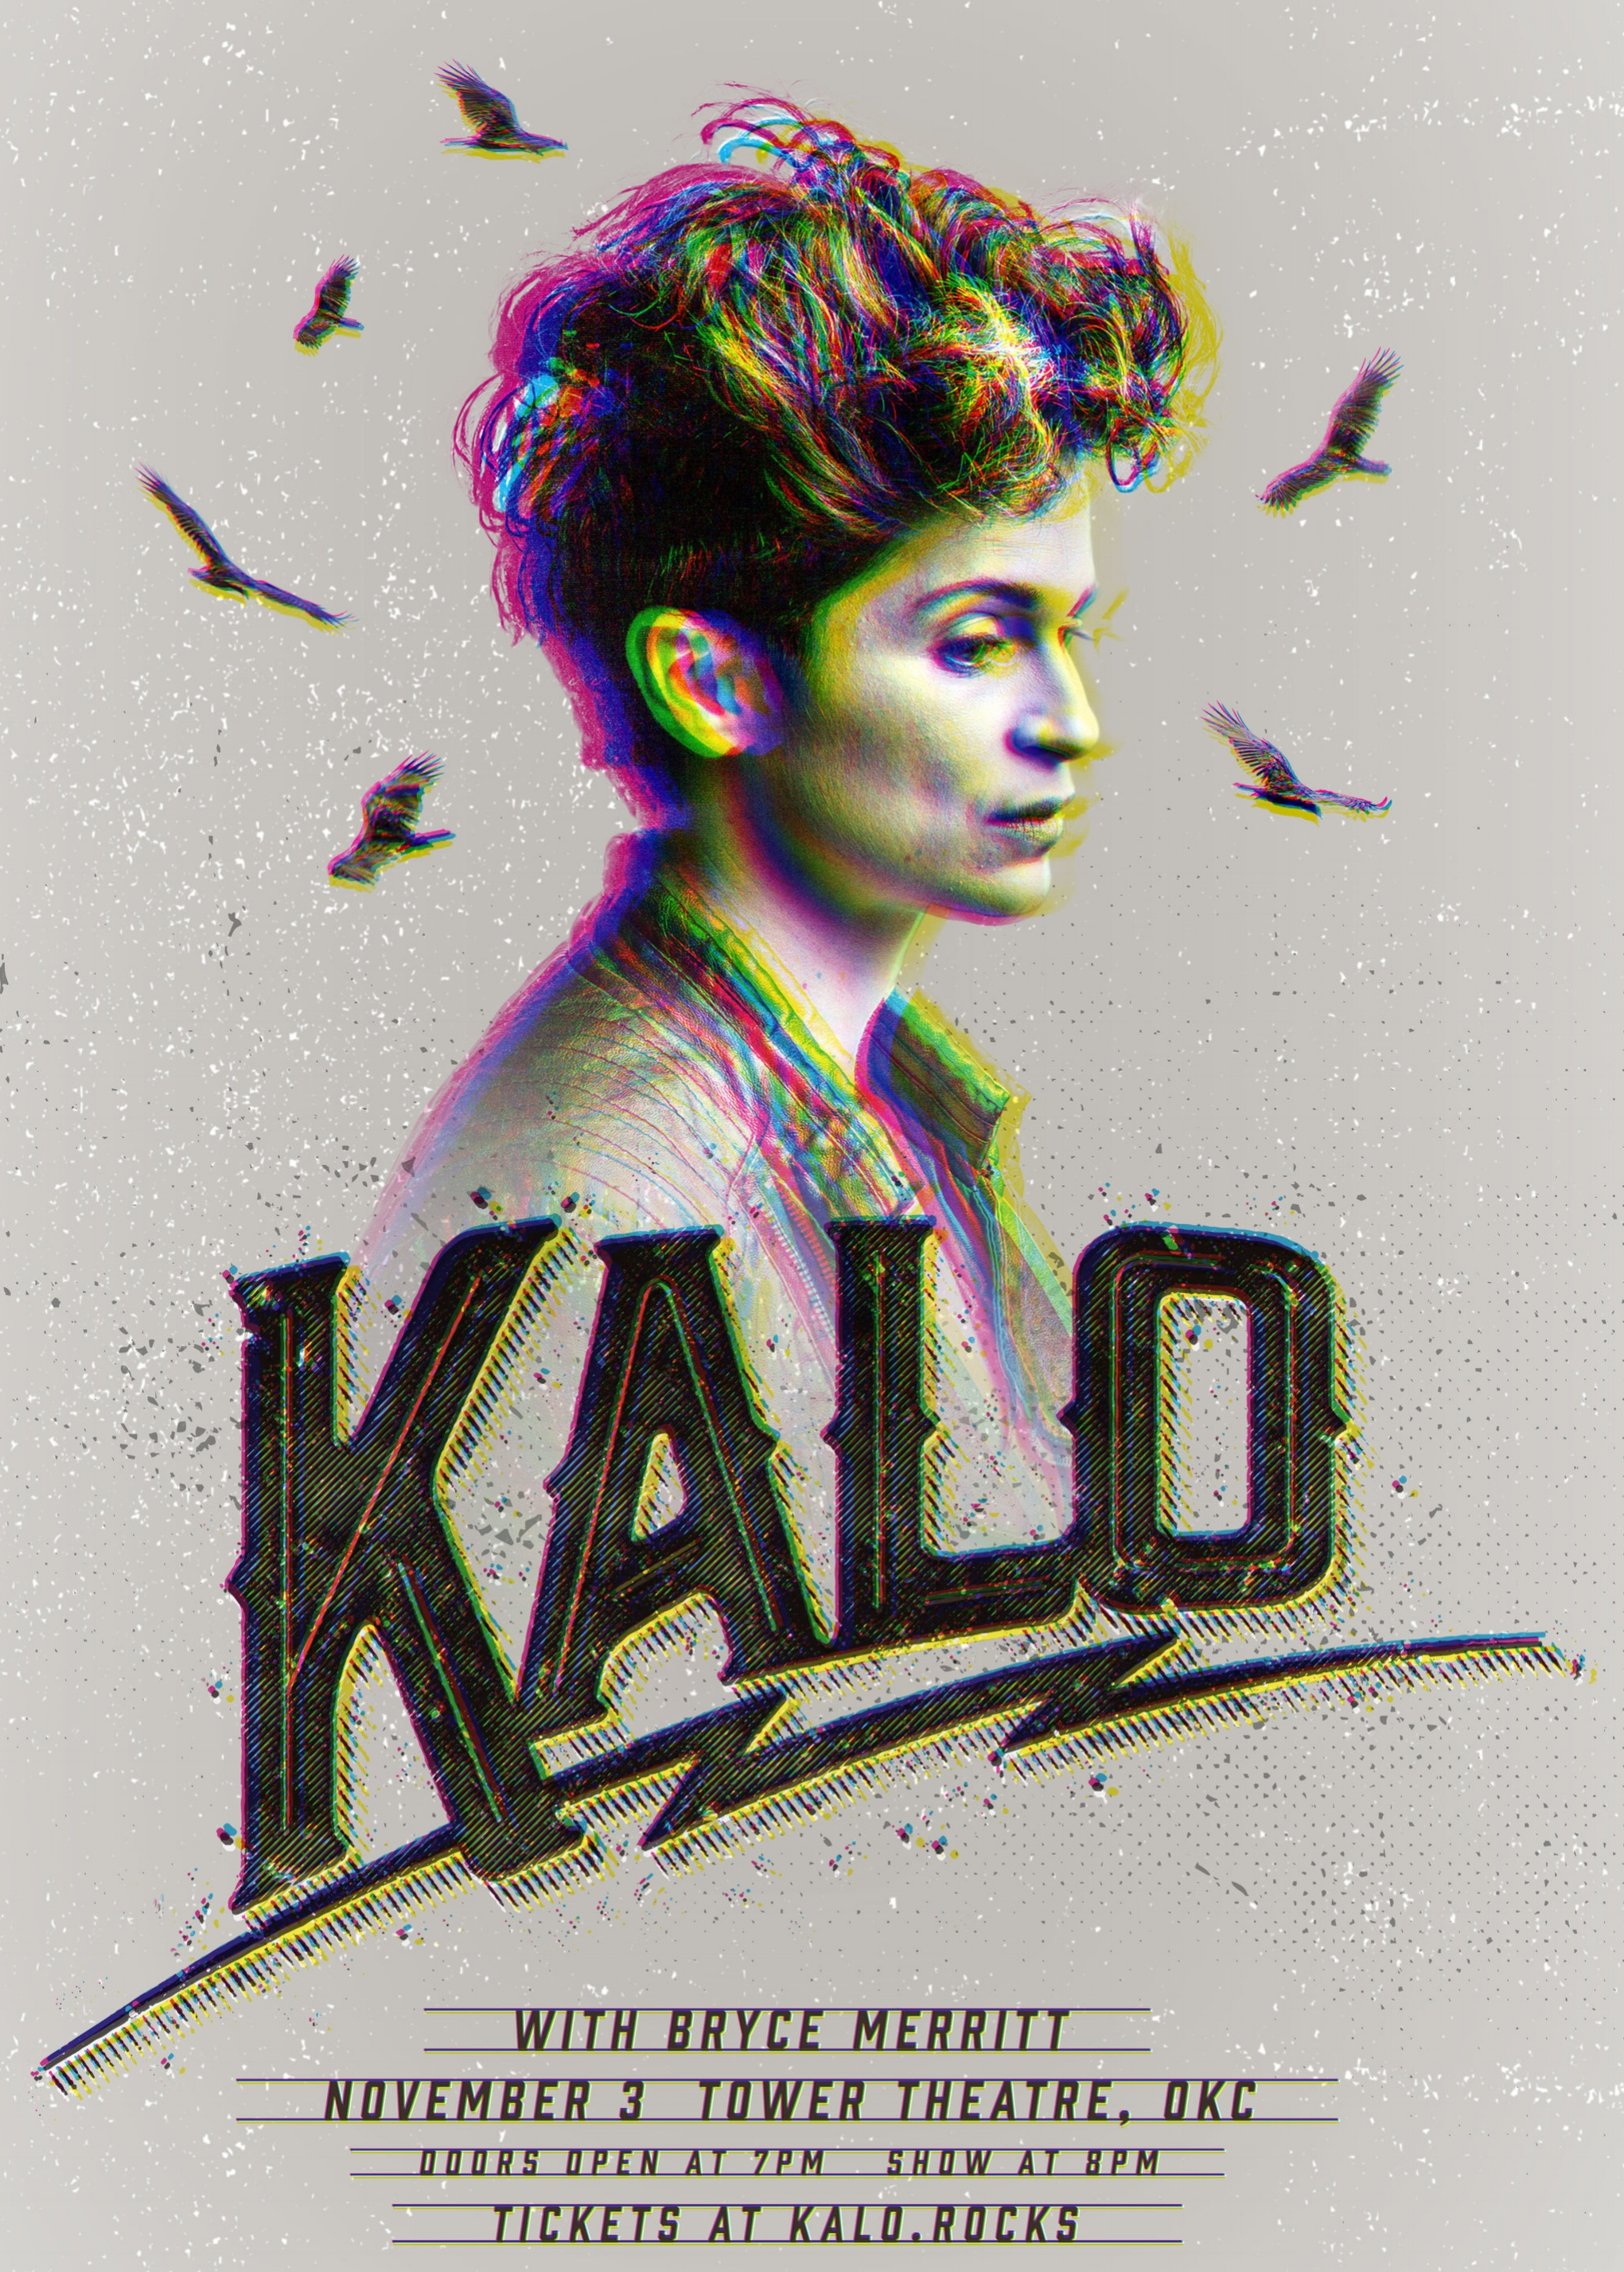 The Hottest Show of the Season - KALO with Bryce Merritt Nov. 3 at Tower Theatre in Oklahoma City.